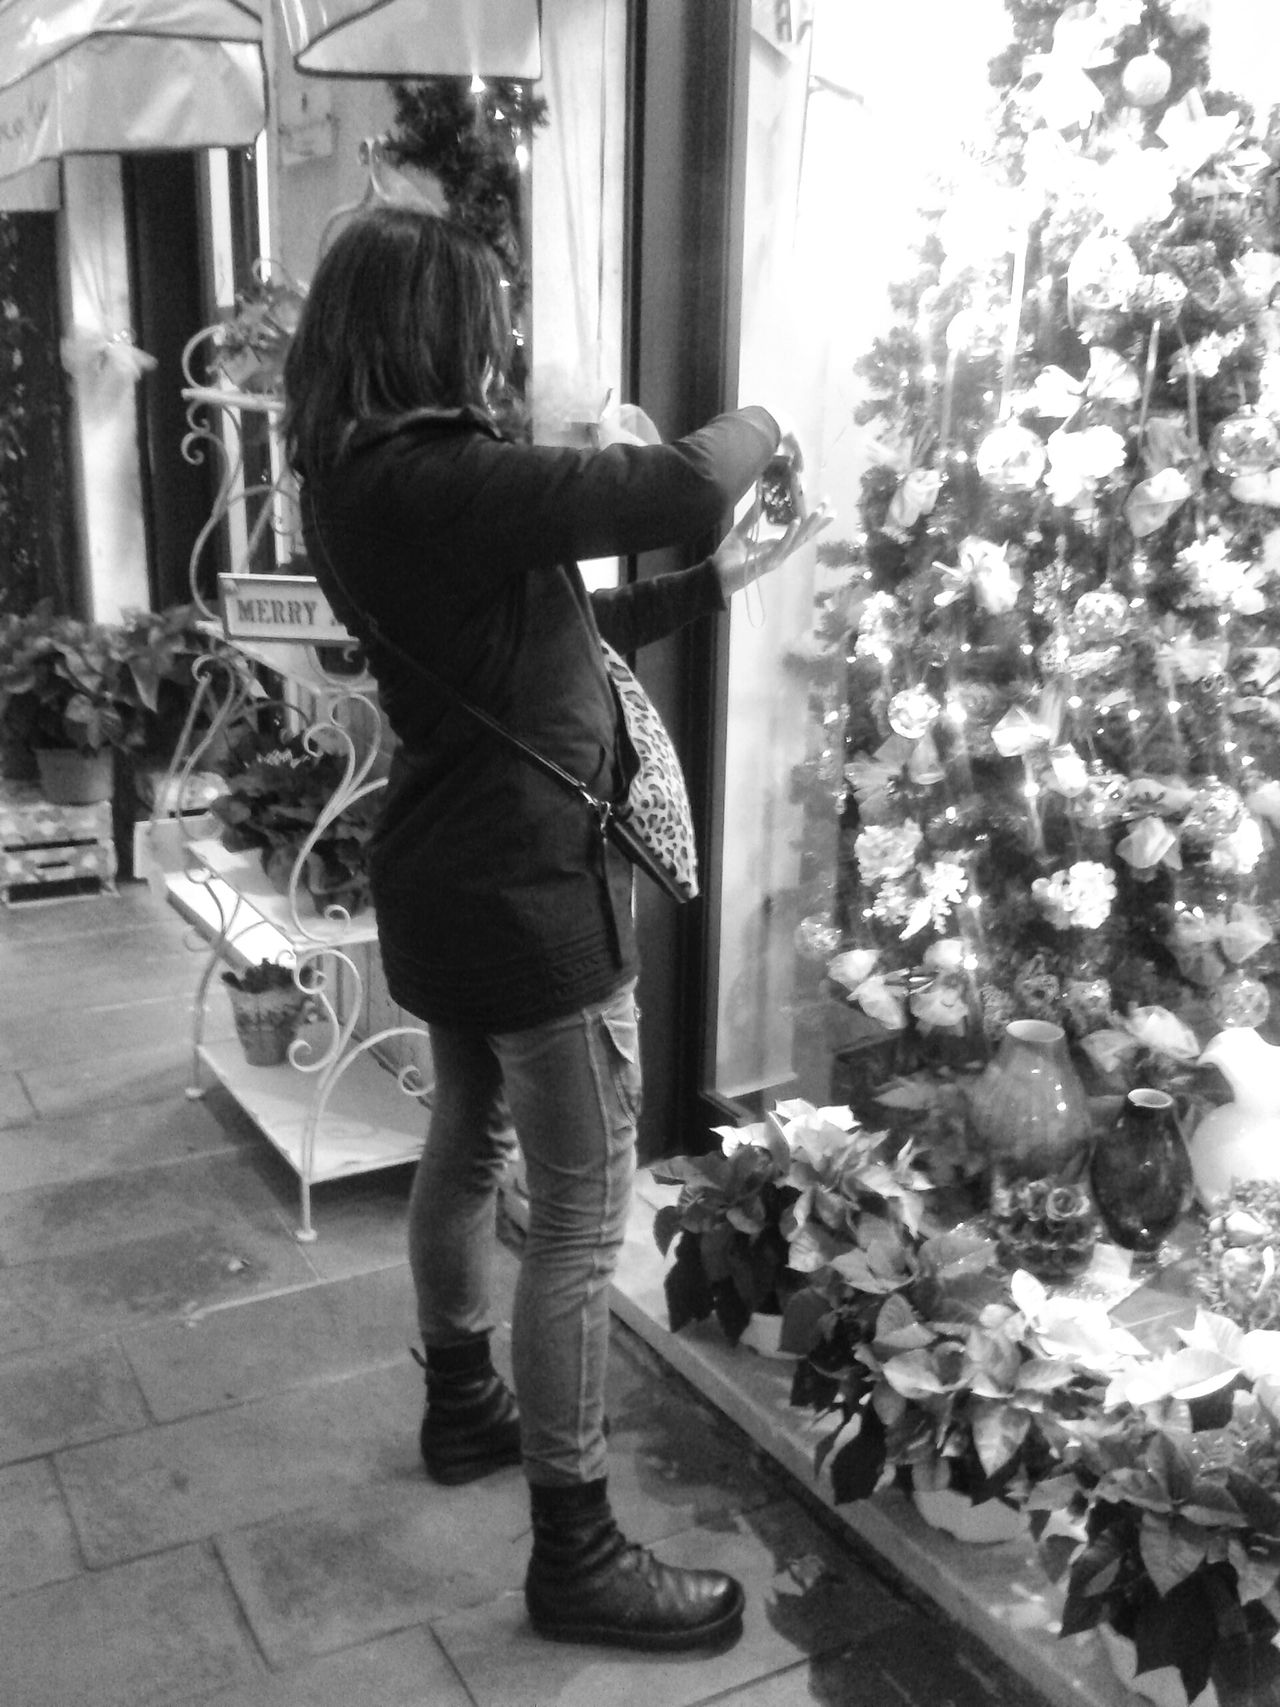 """""""Photographing a photographer"""". Friend People Photography Christmas Time Christmas Lights Amici Christmas Tree Smartphone Photography with S3mini plus Snapseed B&w Filter Bianco E Nero Black And White Italy"""